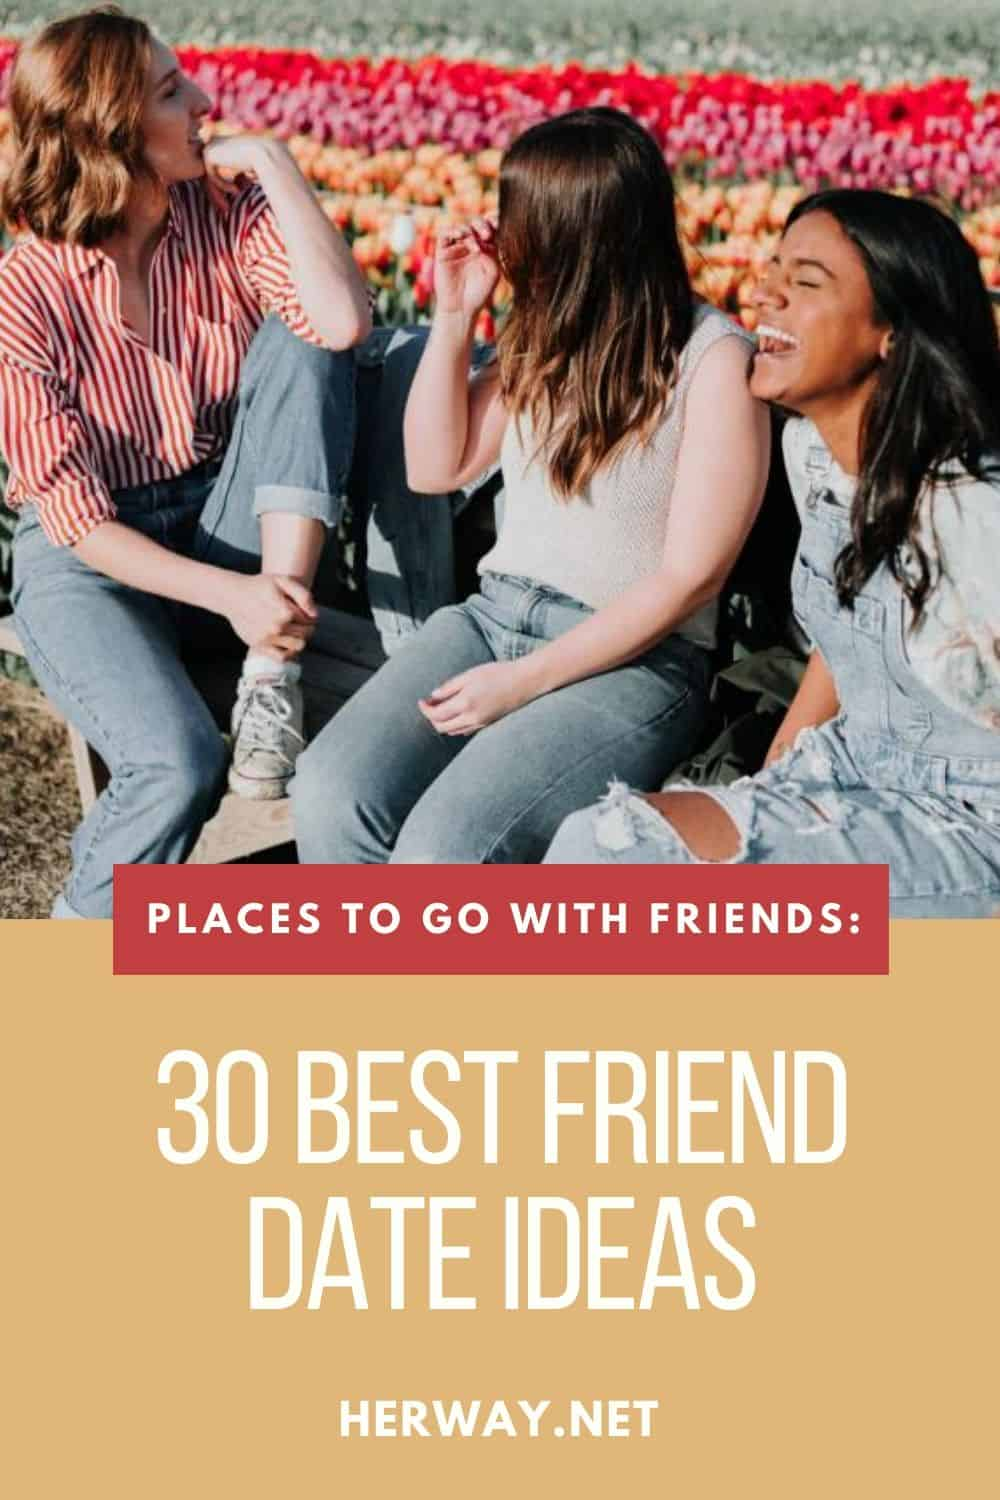 Places To Go With Friends: 30 Best Friend Date Ideas pinterest